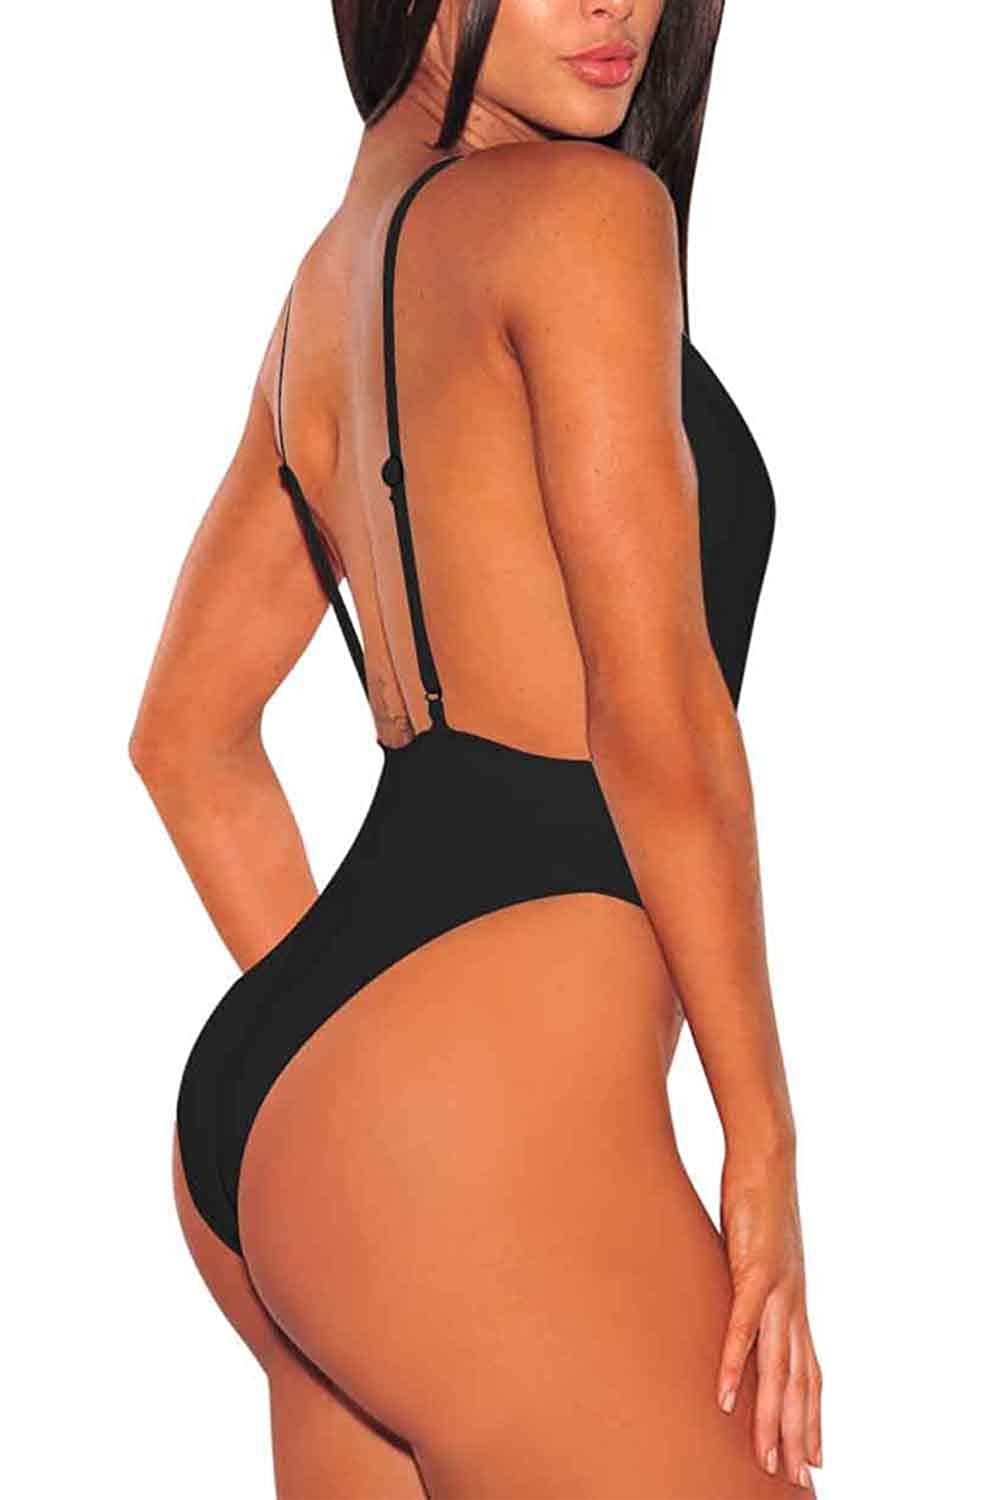 bc0e21c906c Sovoyontee Women's One Piece Sexy Swimsuit High Cut Monokini V Neck Bathing  Suit at Amazon Women's Clothing store: